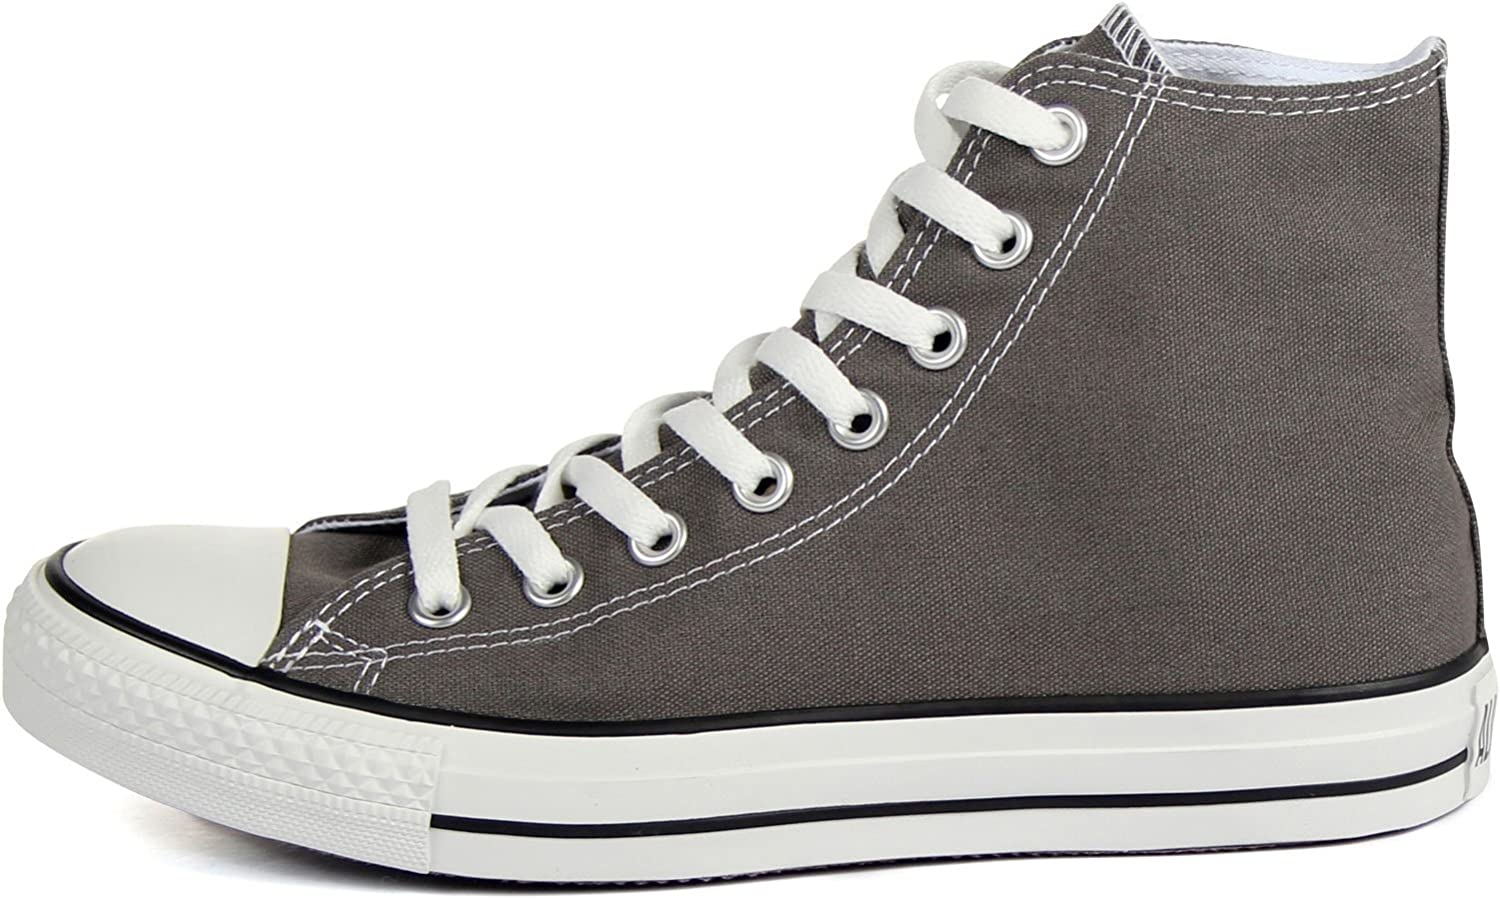 Converse Herren EL Distrito Canvas Low Top Turnschuh Optic Weiß